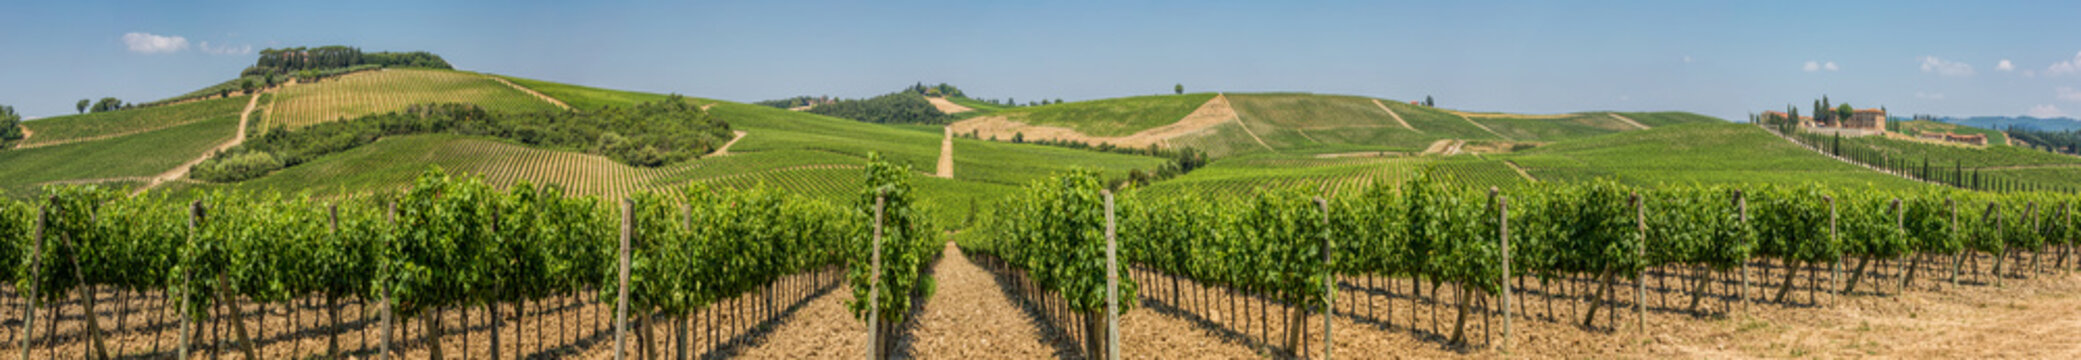 Panoramic view of a winery and vineyards in the rolling hills near San Gimignano, Chianti, Tuscany